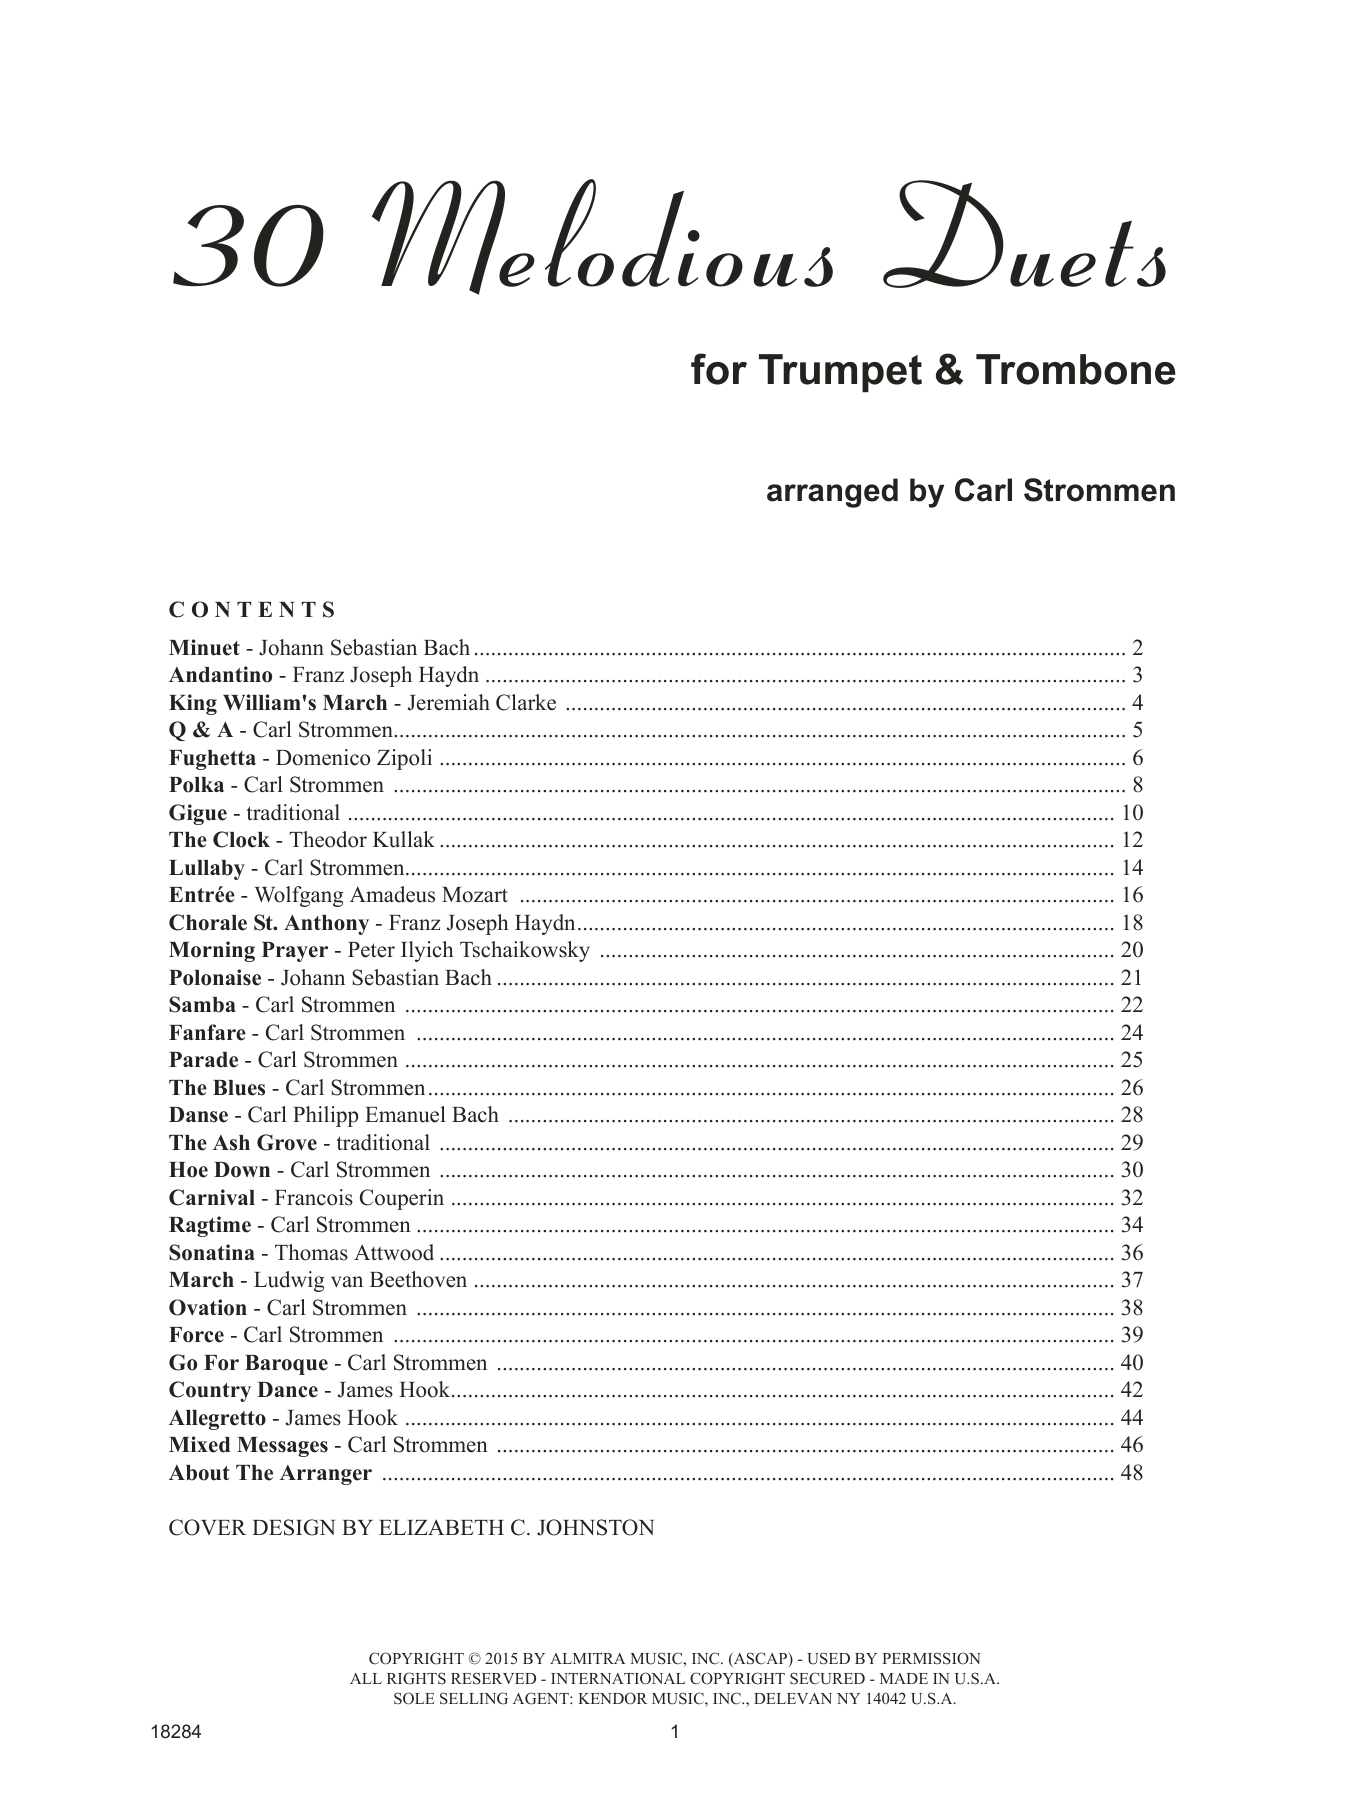 Carl Strommen 30 Melodious Duets (Trumpet & Trombone) sheet music notes and chords. Download Printable PDF.